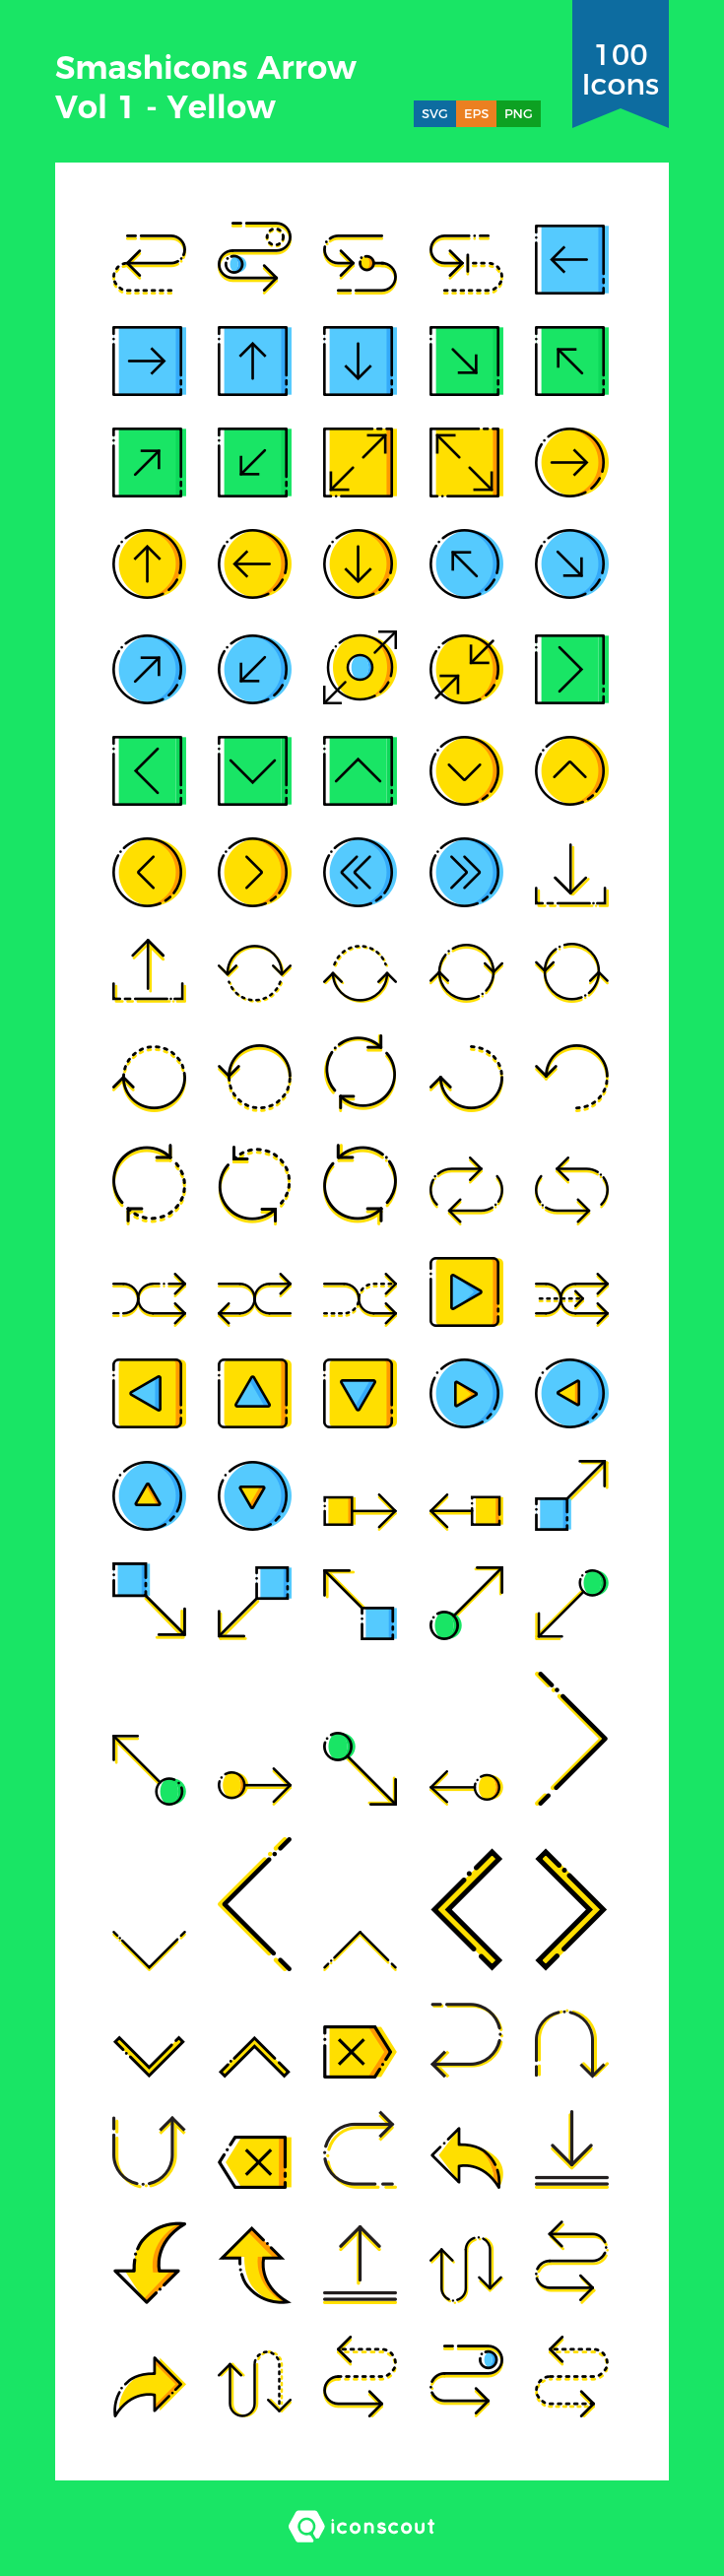 Smashicons Arrow Vol 1 Yellow Icon Pack 100 Filled Outline Icons Icon Icon Pack The 100